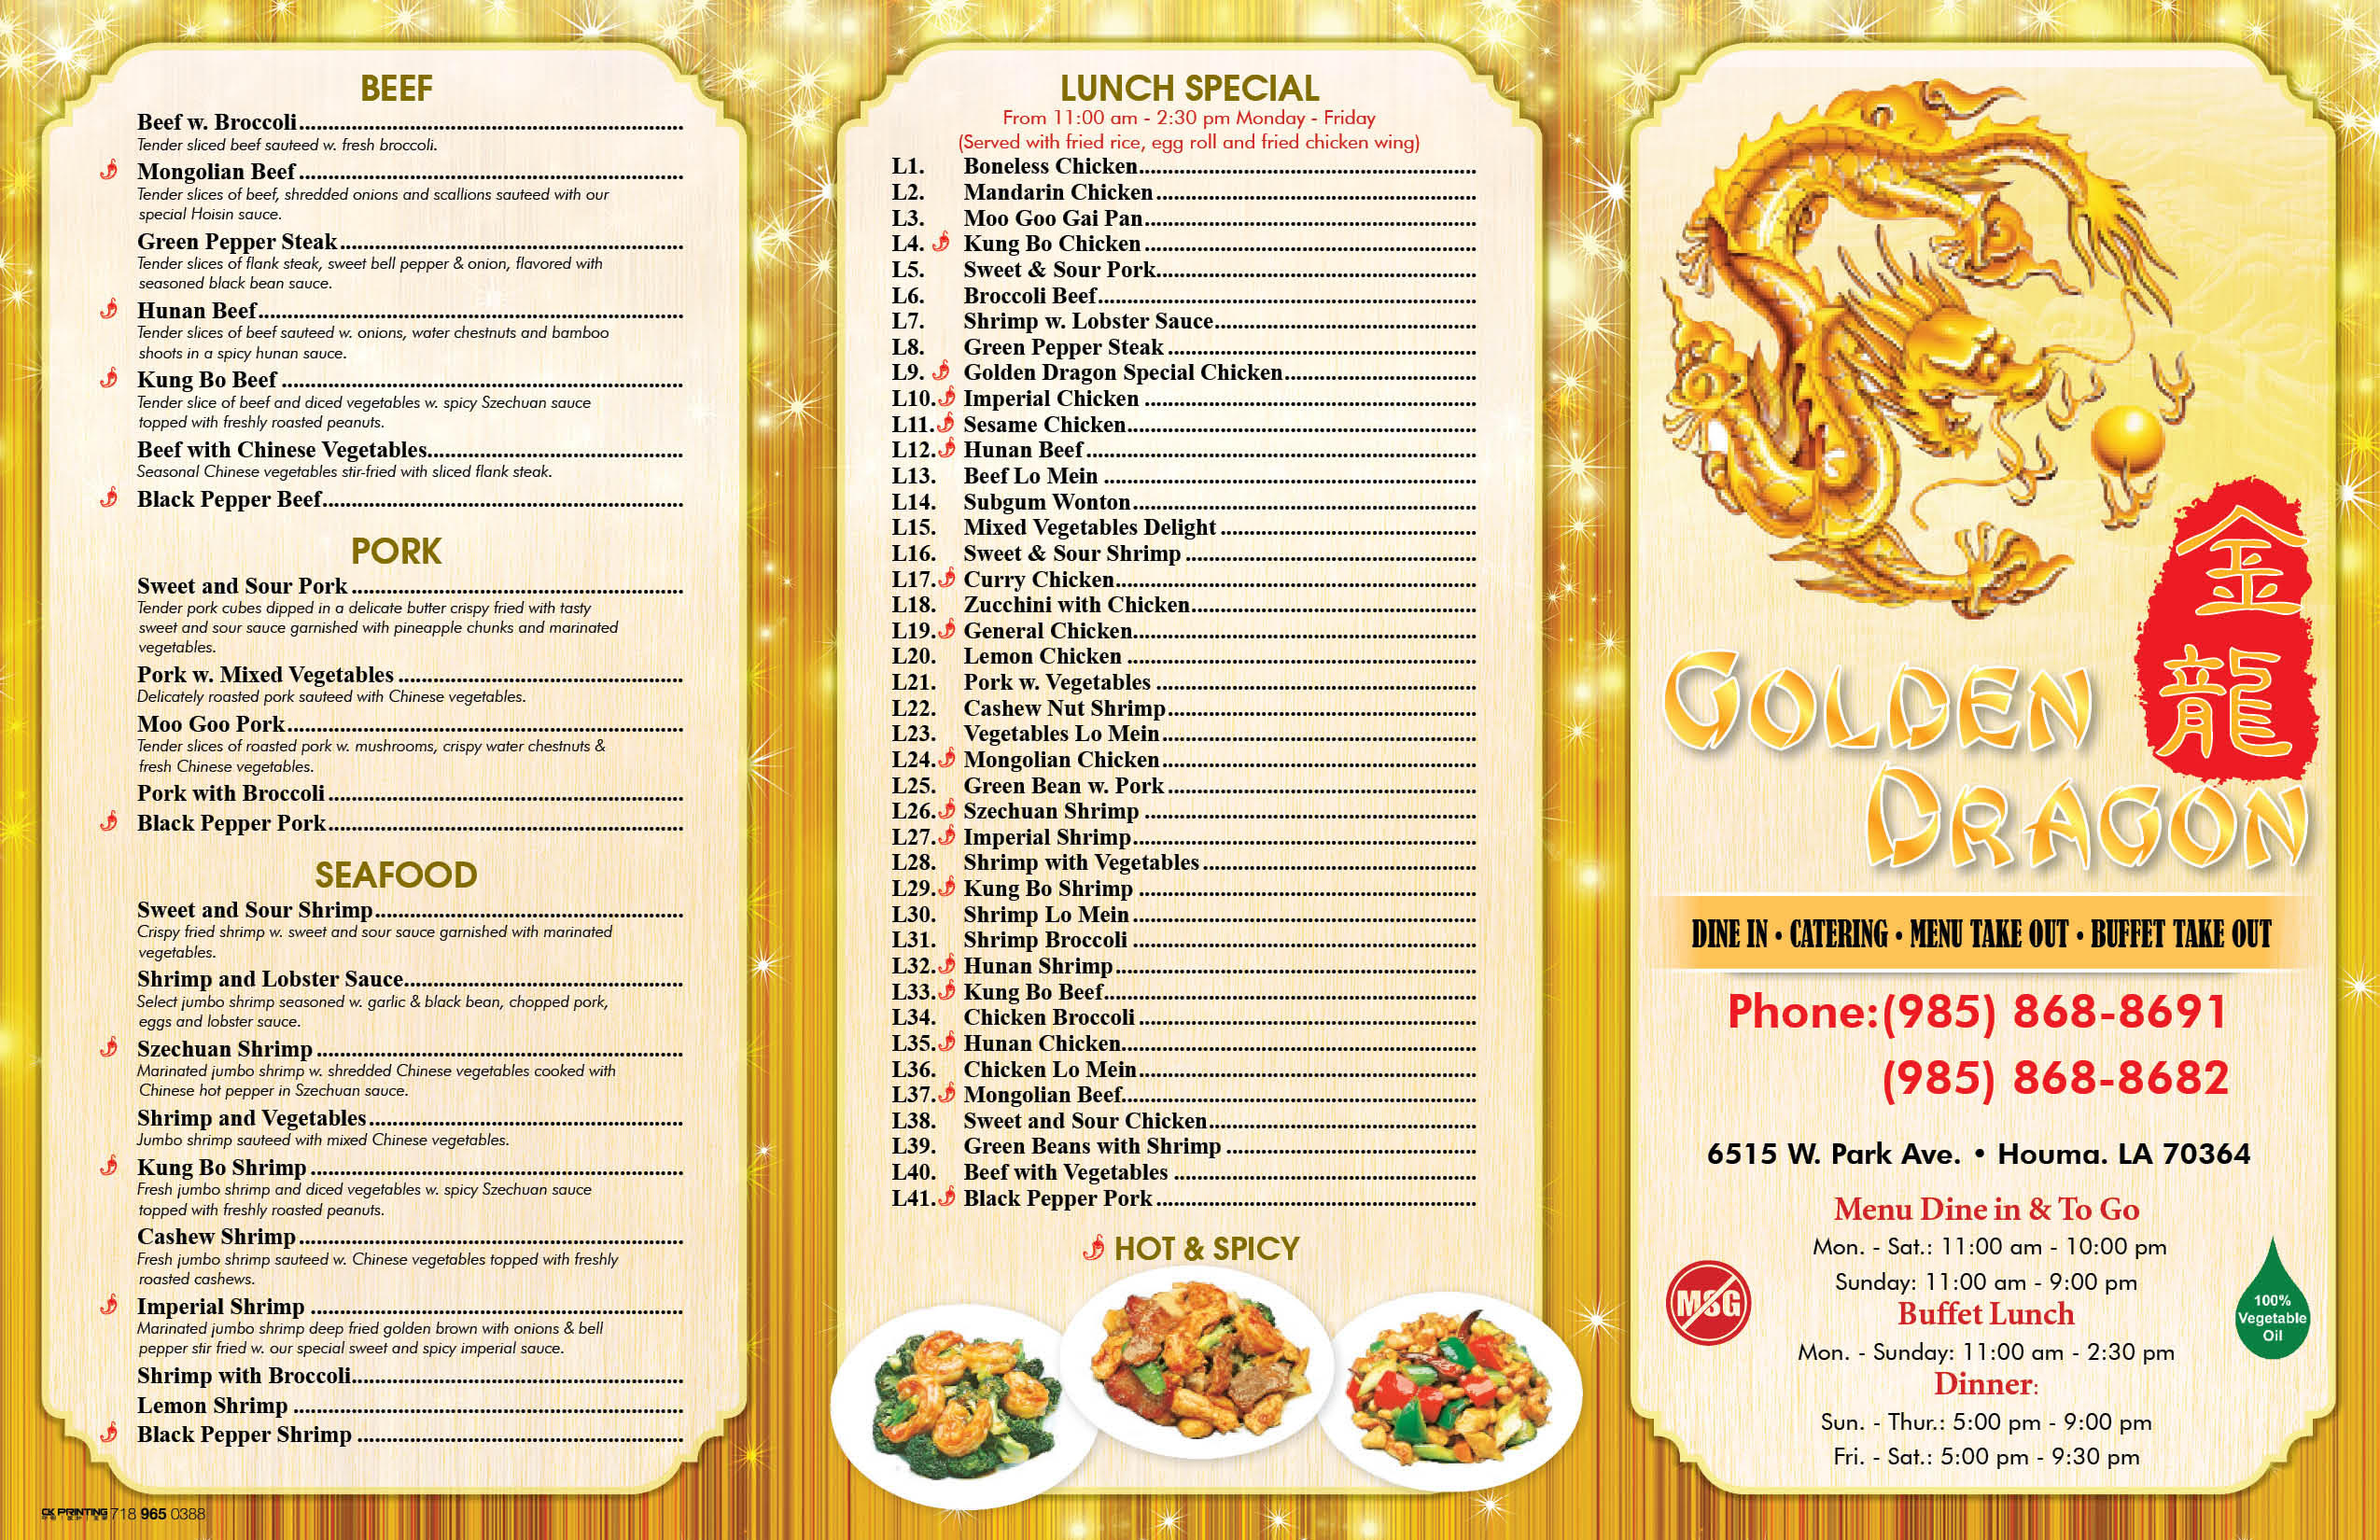 Golden dragon in houma la for menu drinking with steroids